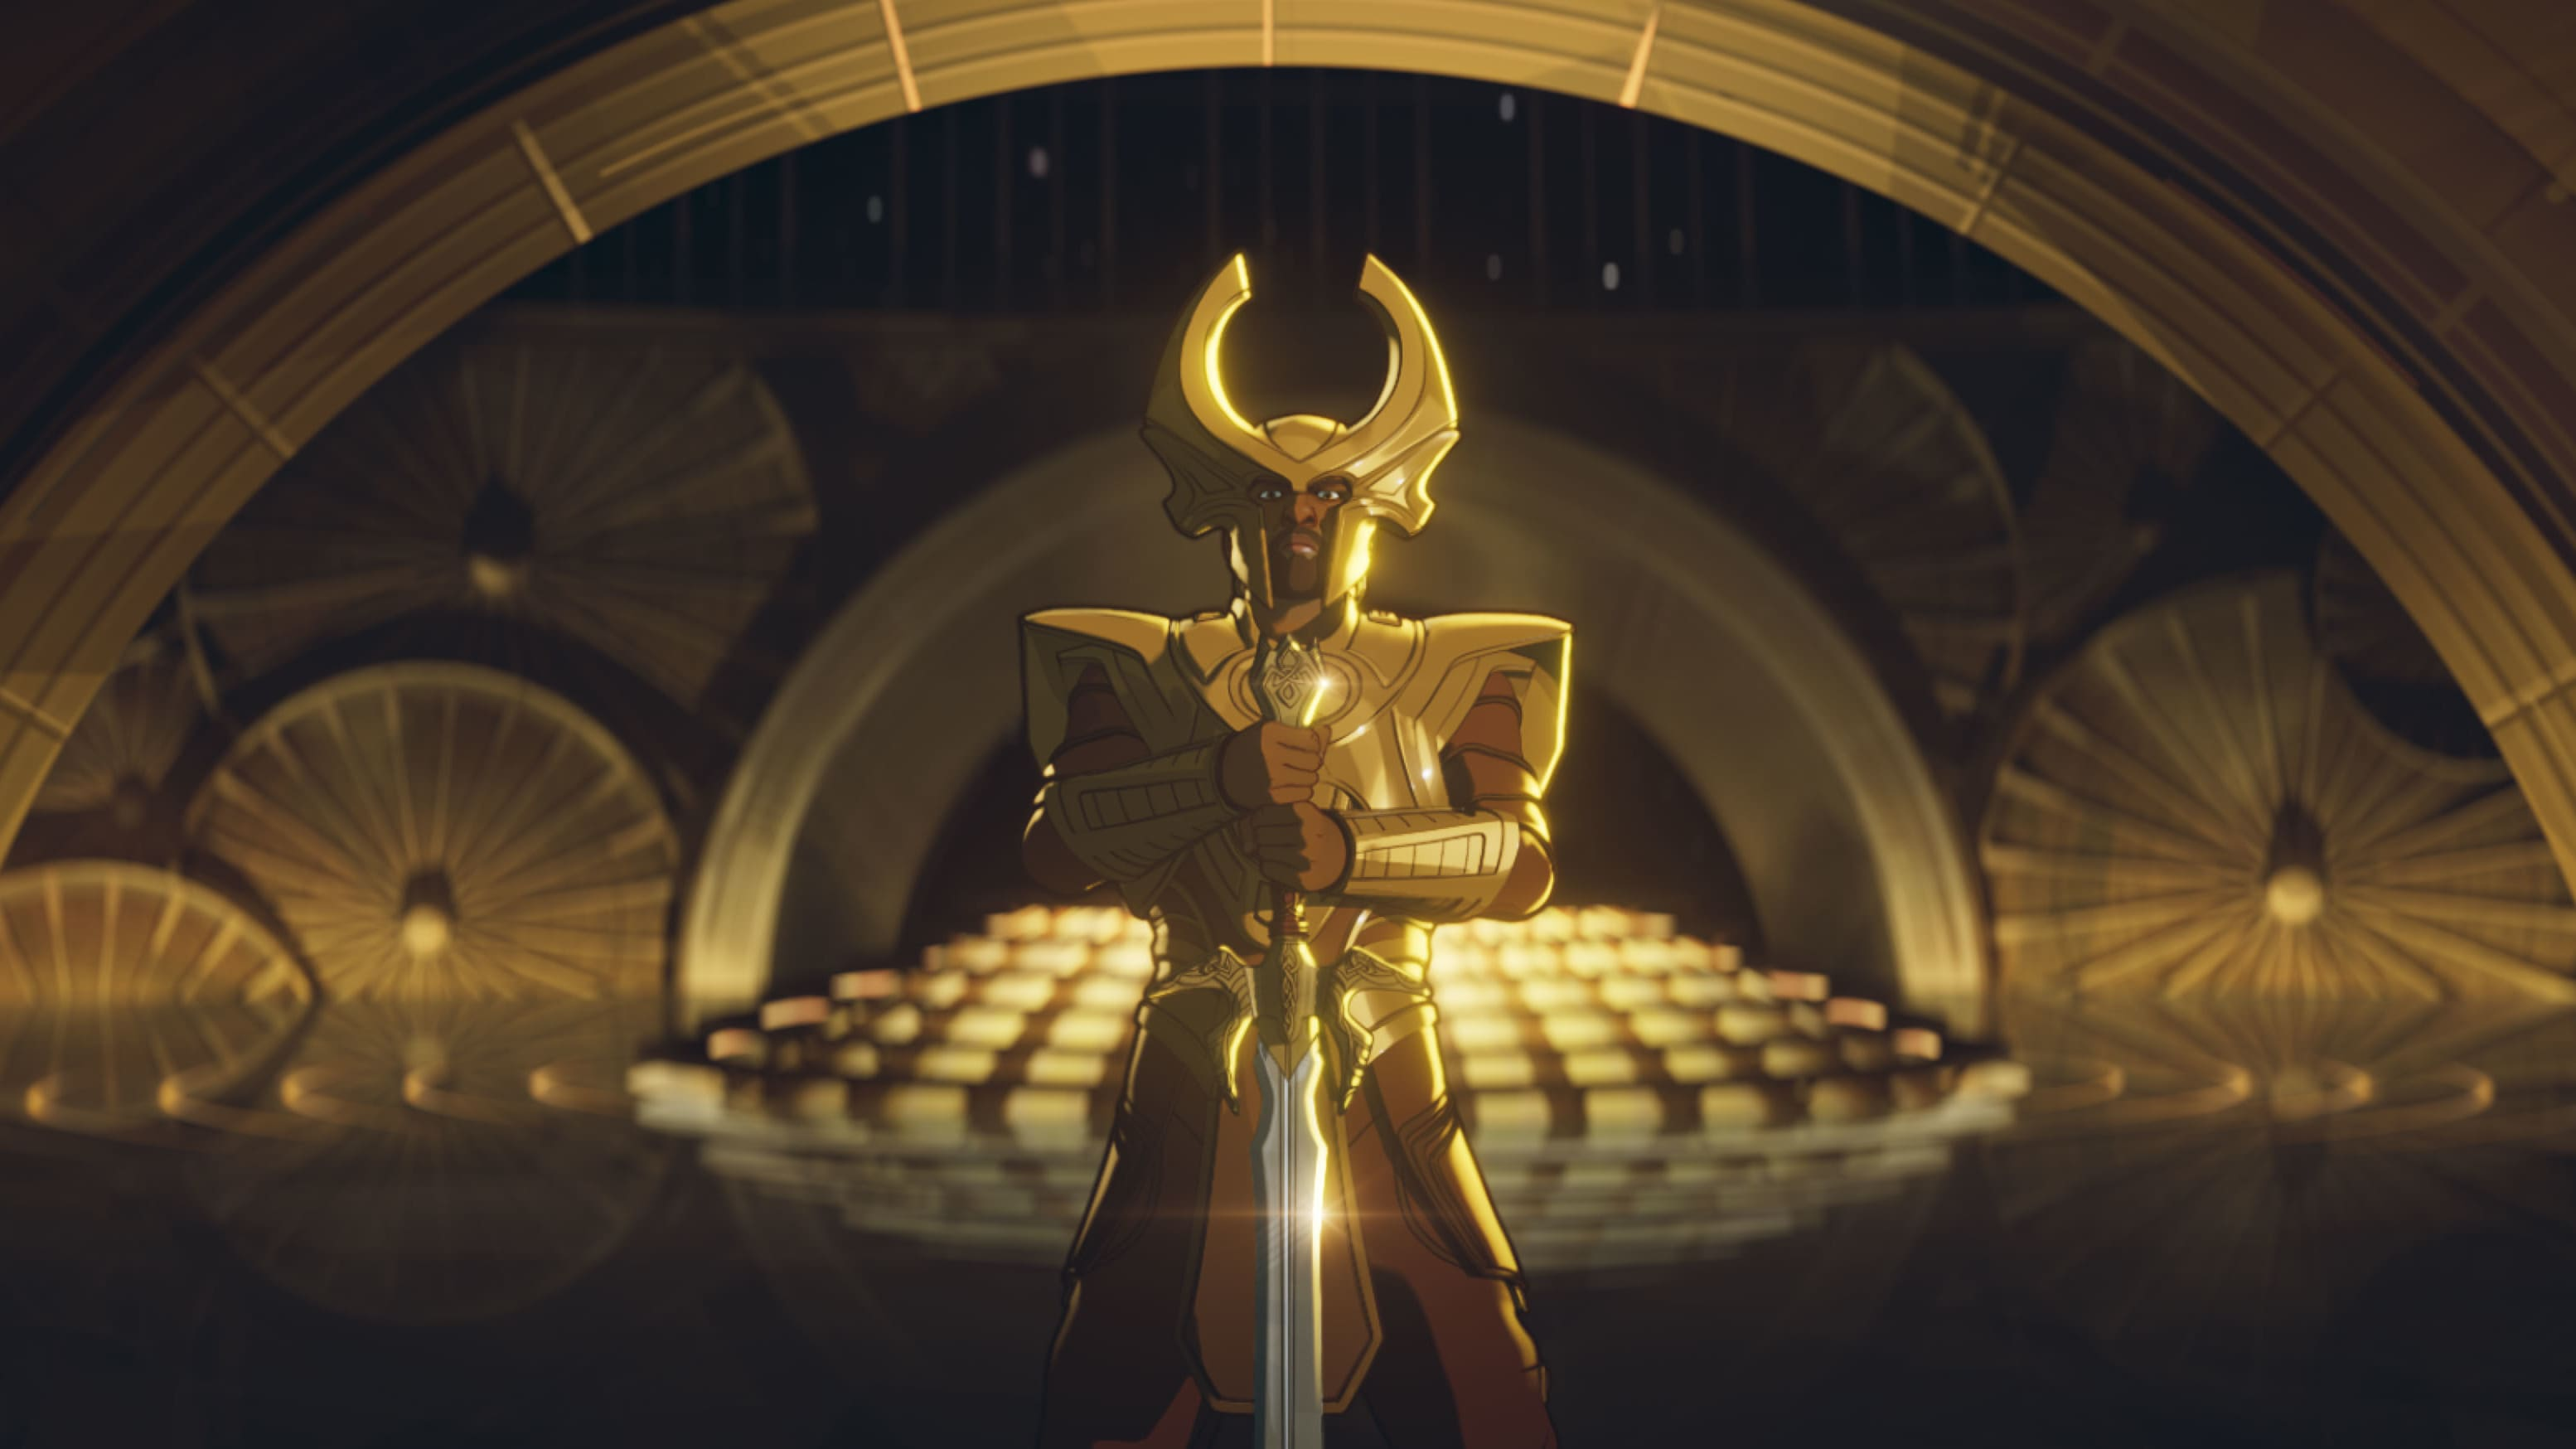 Heimdall in Marvel Studios' WHAT IF…? exclusively on Disney+. ©Marvel Studios 2021. All Rights Reserved.